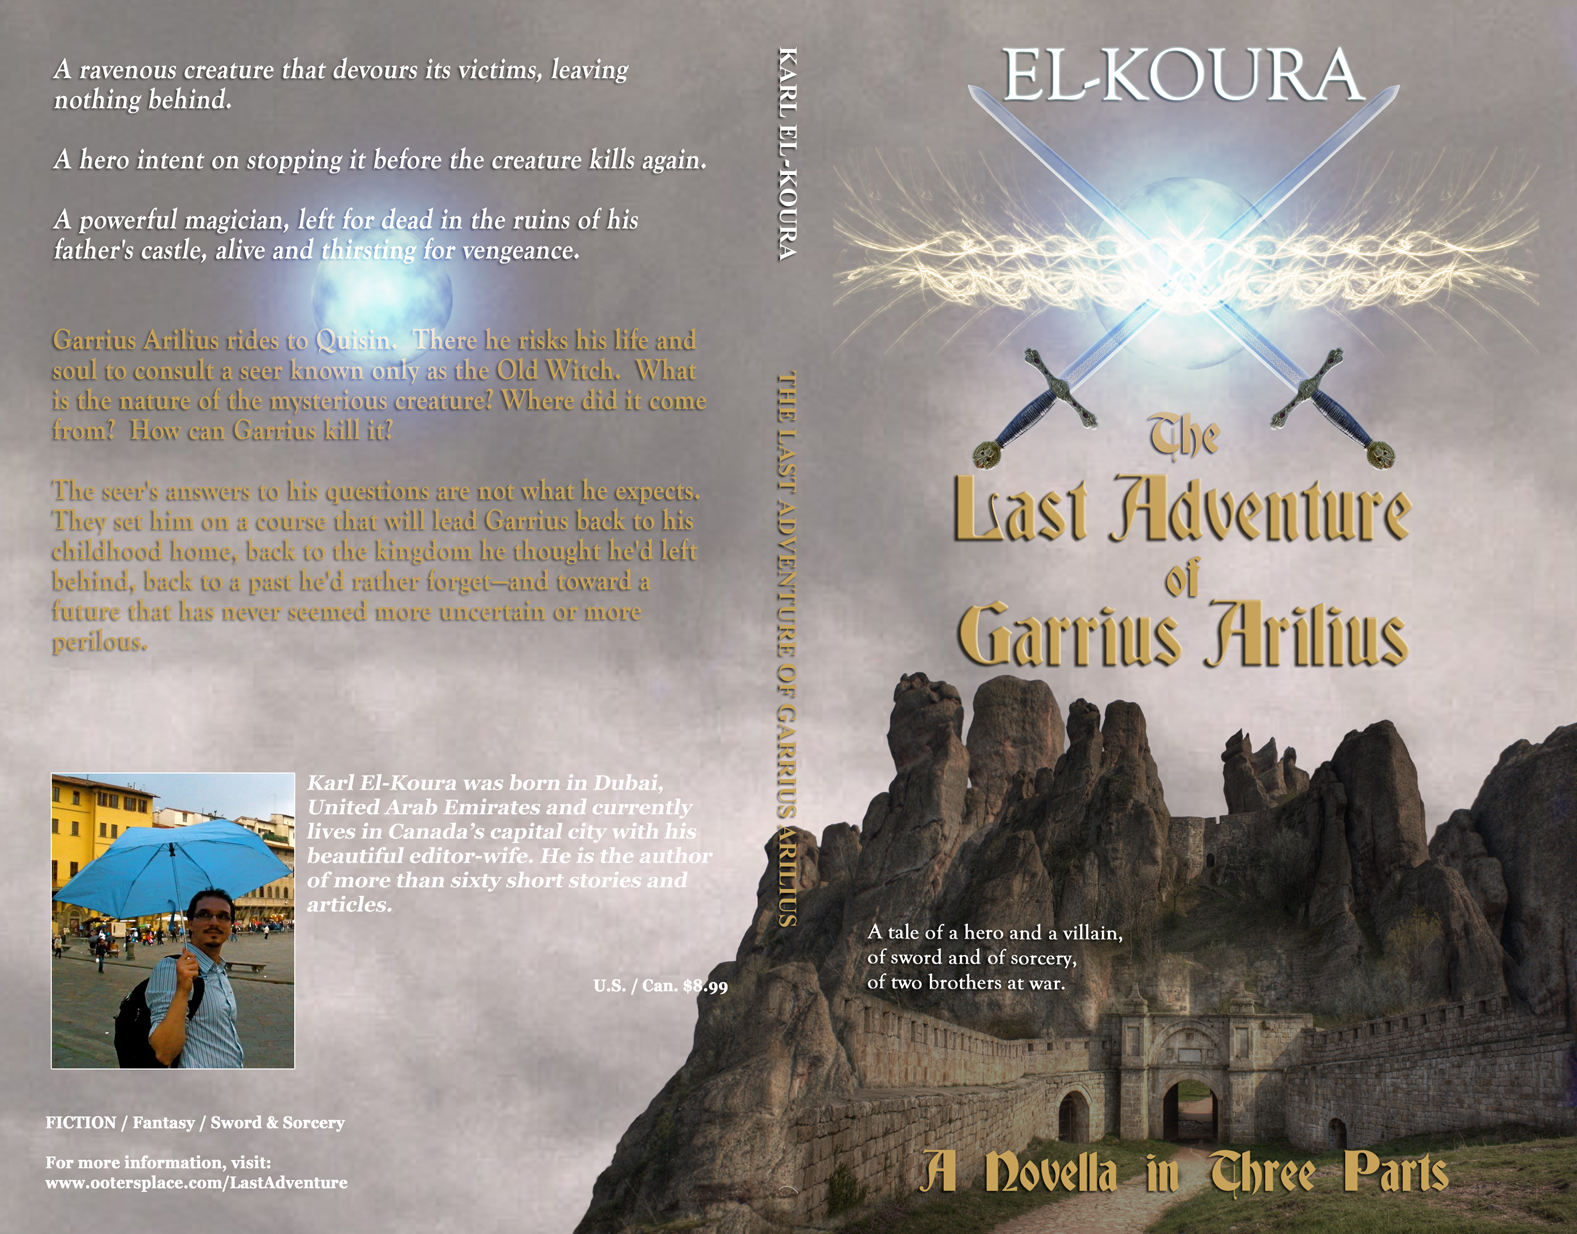 The Last Adventure of Garrius Arilius (paperback cover)